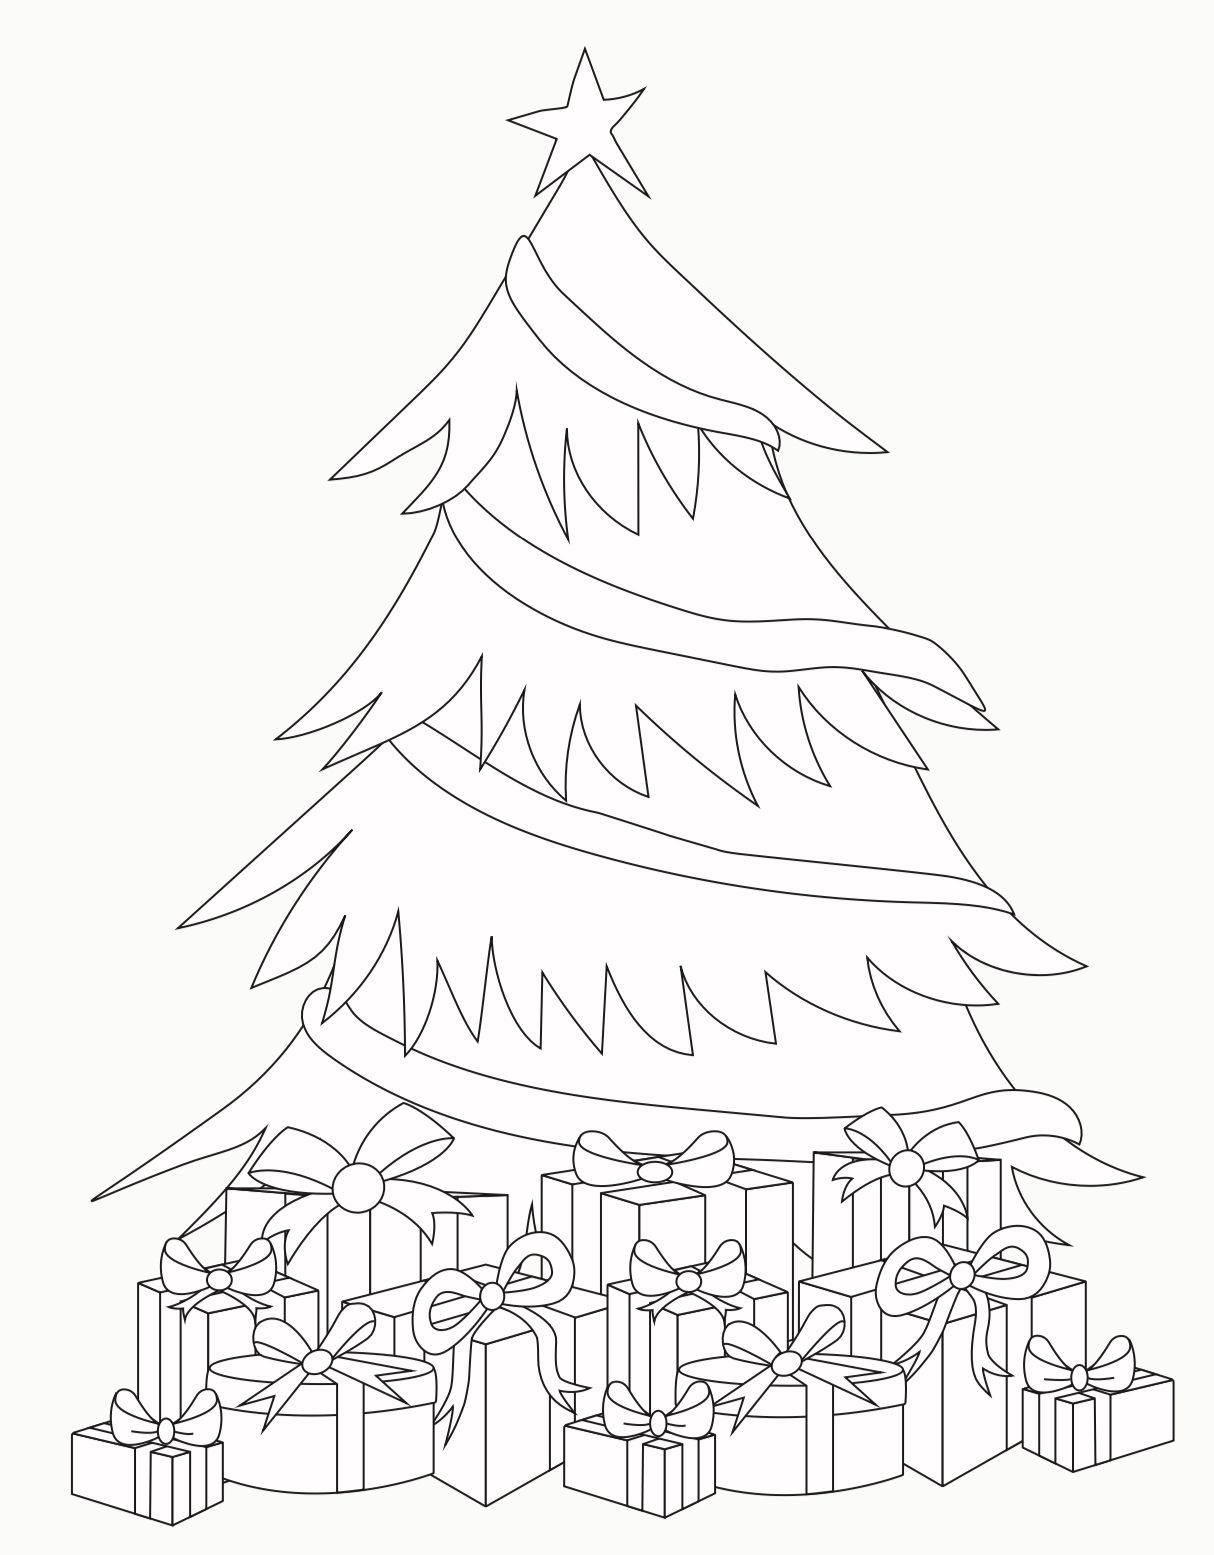 Coloring Page Christmas Tree With Presents Coloring Pages Present Coloring Page